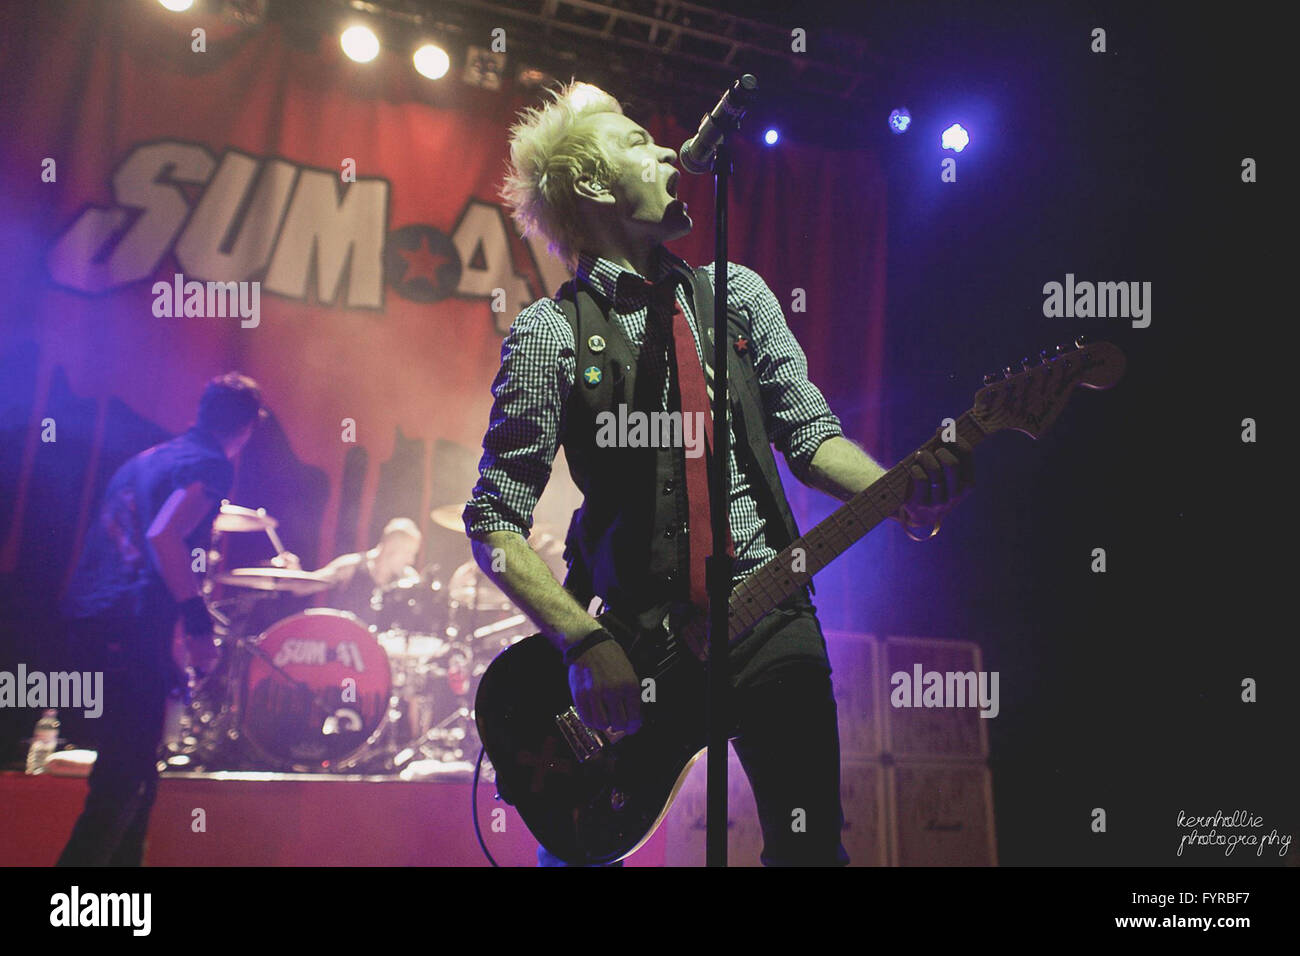 for this news day, the Kerrang! Tour was in Cardiff with Sum 41 and other bands, I got a press pass so I went and - Stock Image